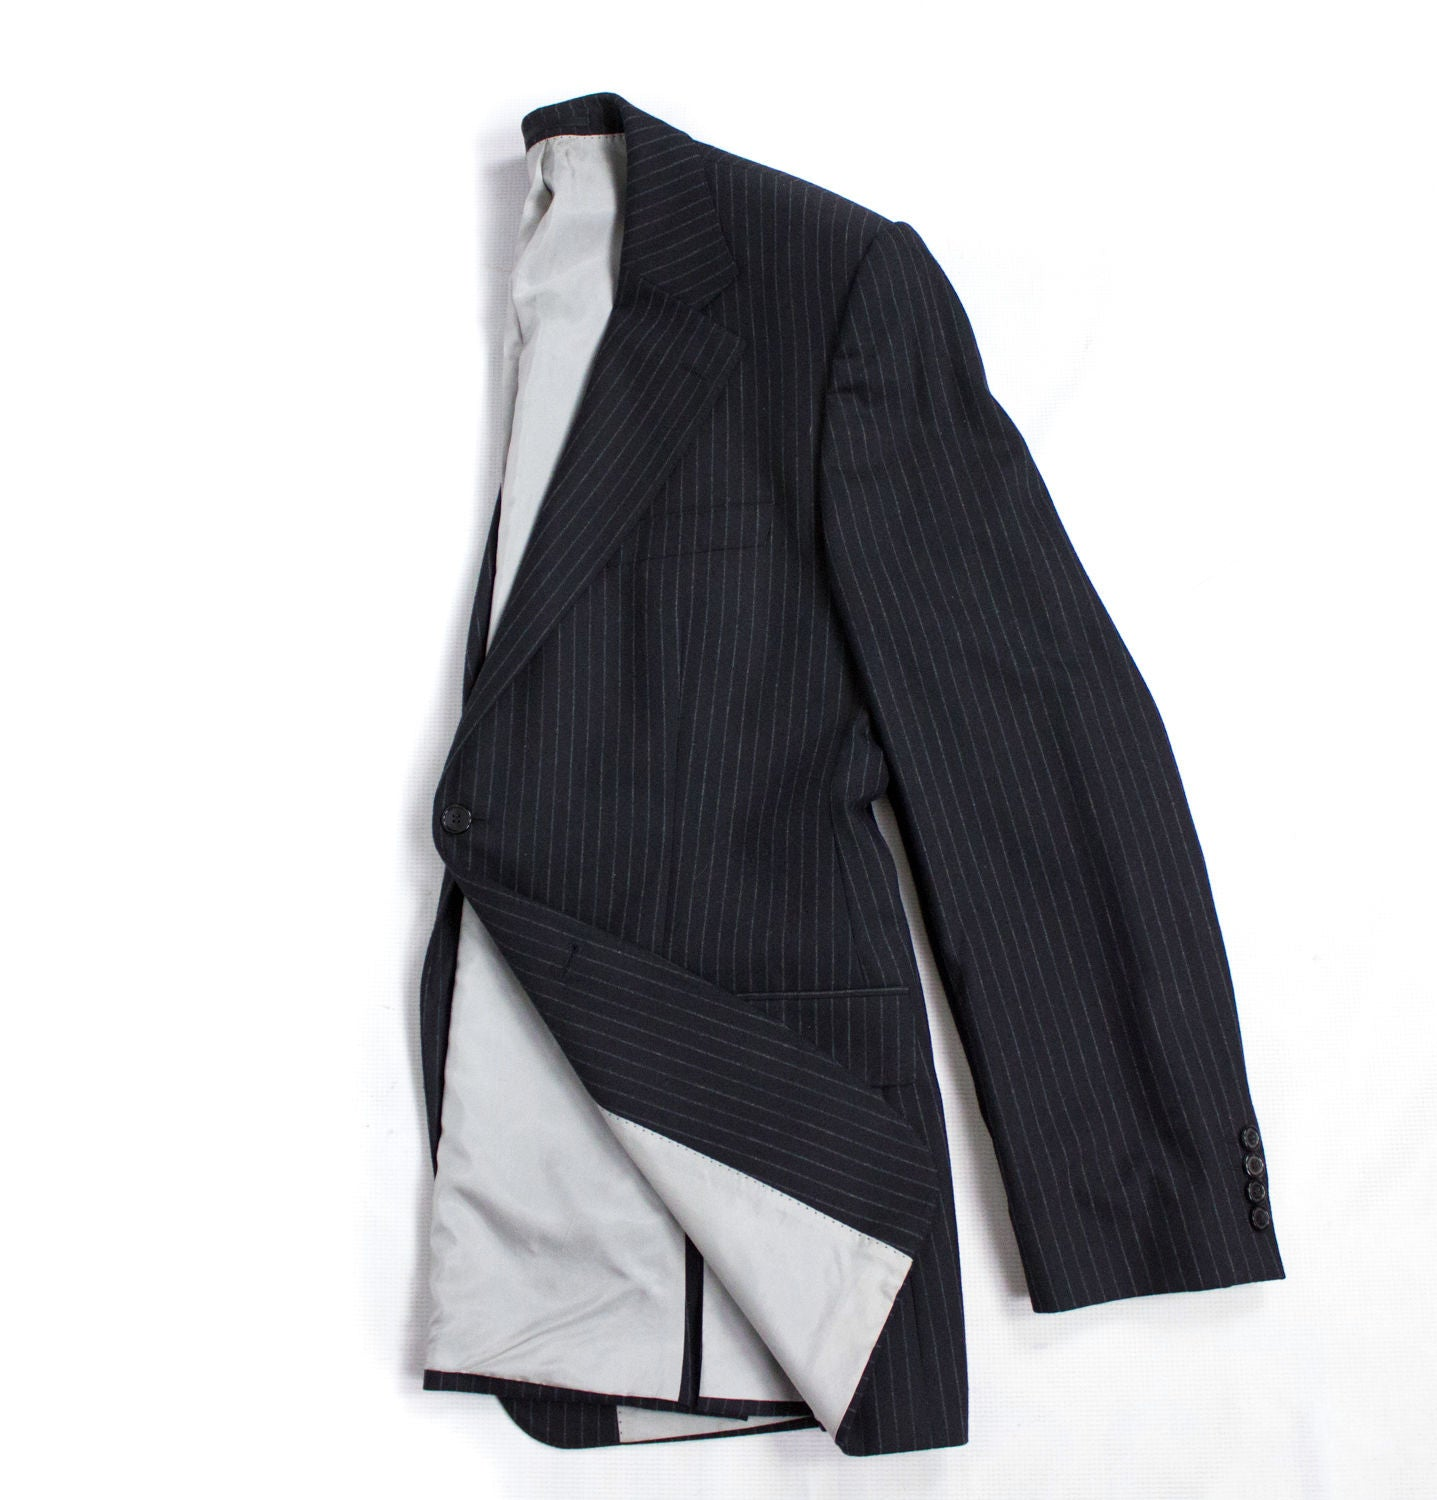 HUGO BOSS Cashmere-Wool Black Striped Blazer, US44/EU54 - secondfirst